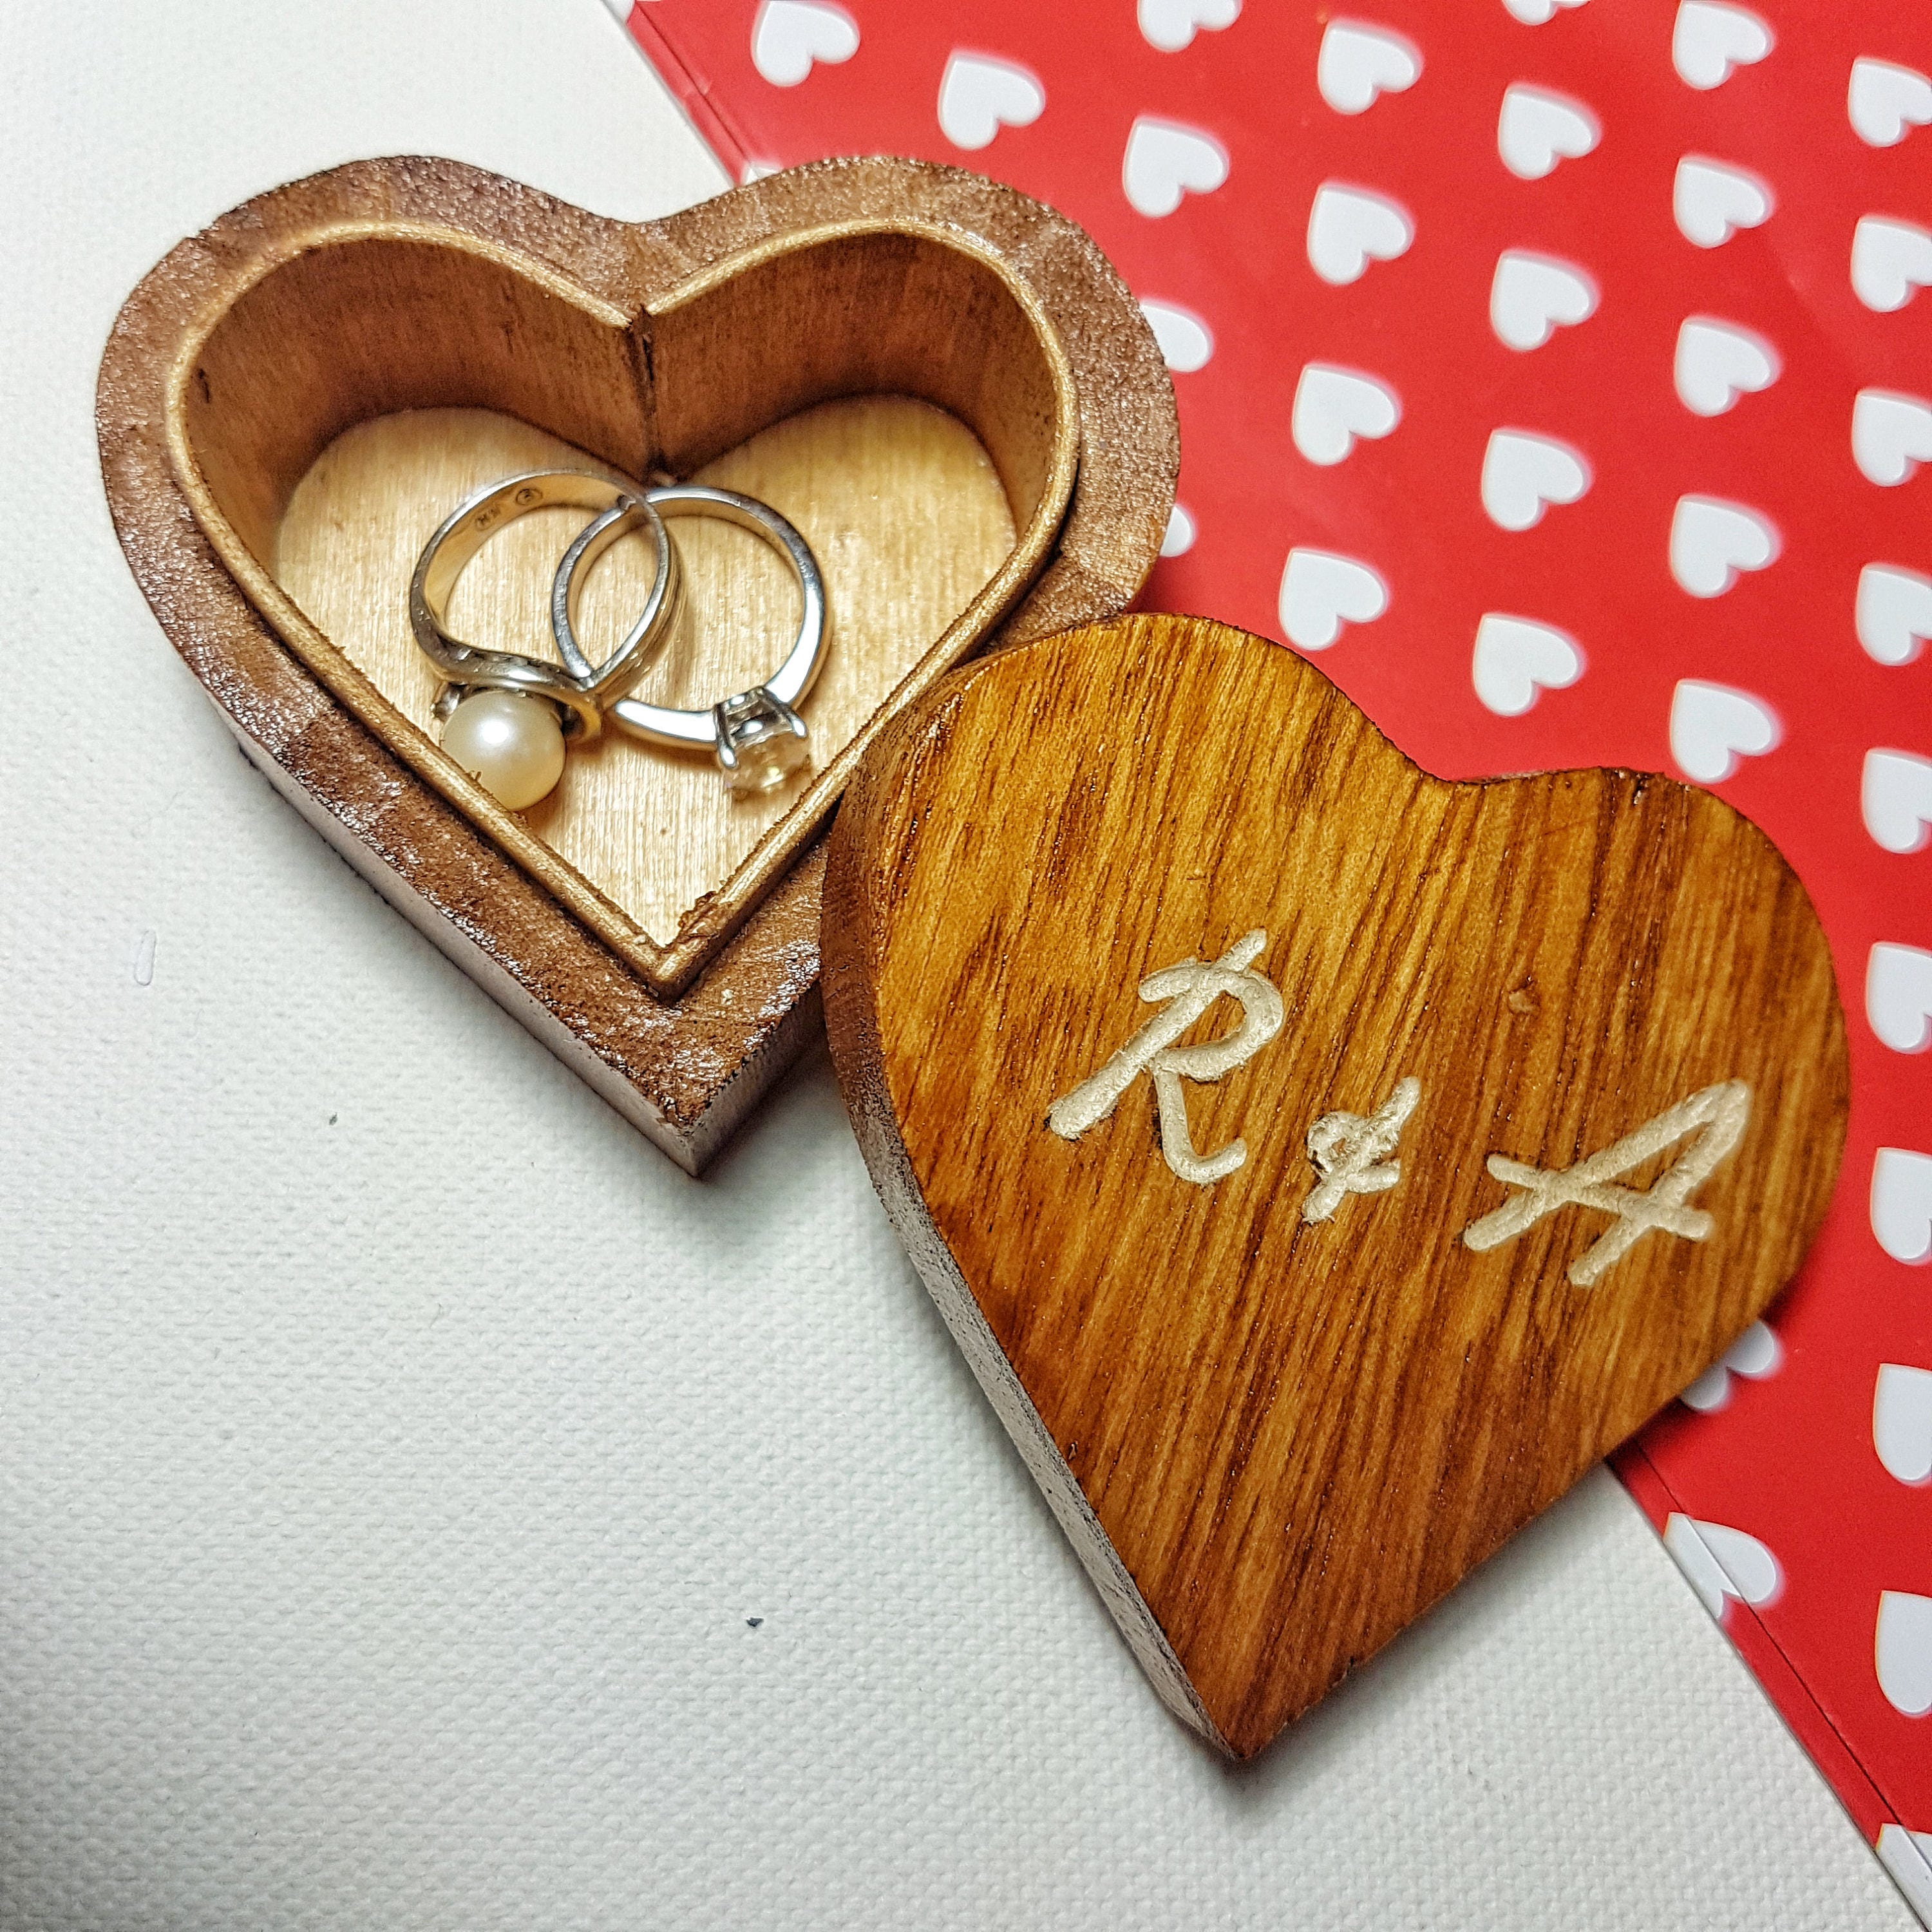 Personalised Engraved Jewellery Box  Wooden Heart Box  Ring Holder  Anniversary Gift  Engagement Gift  Proposal Box  Wedding Keepsake